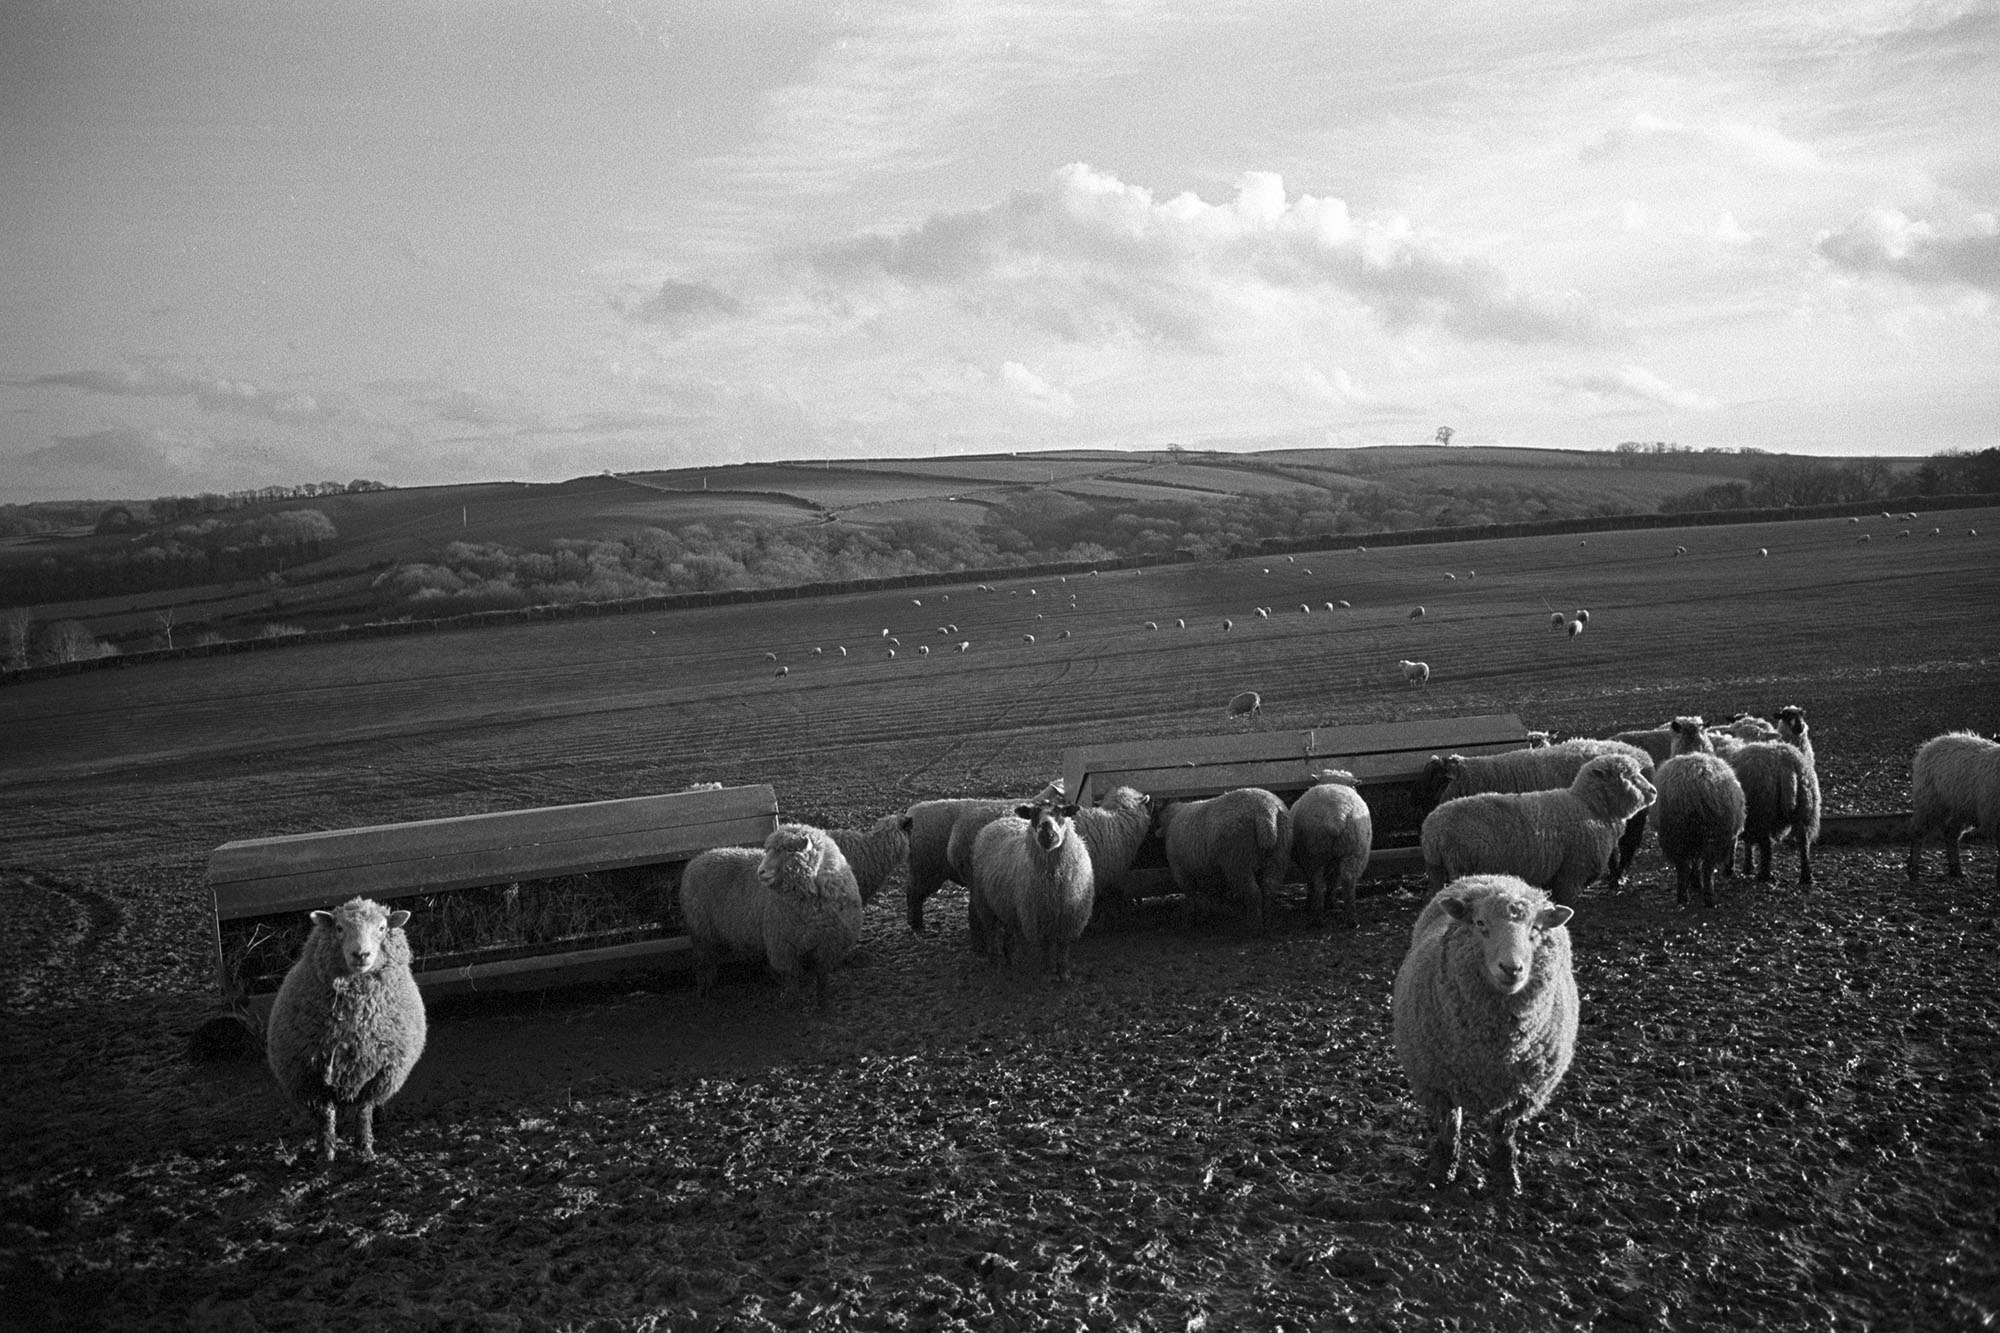 Sheep in muddy field, hoping to be fed. <br /> [A flock of sheep in a muddy field near Ashreigney. They are stood by two haystacks waiting to be fed.]